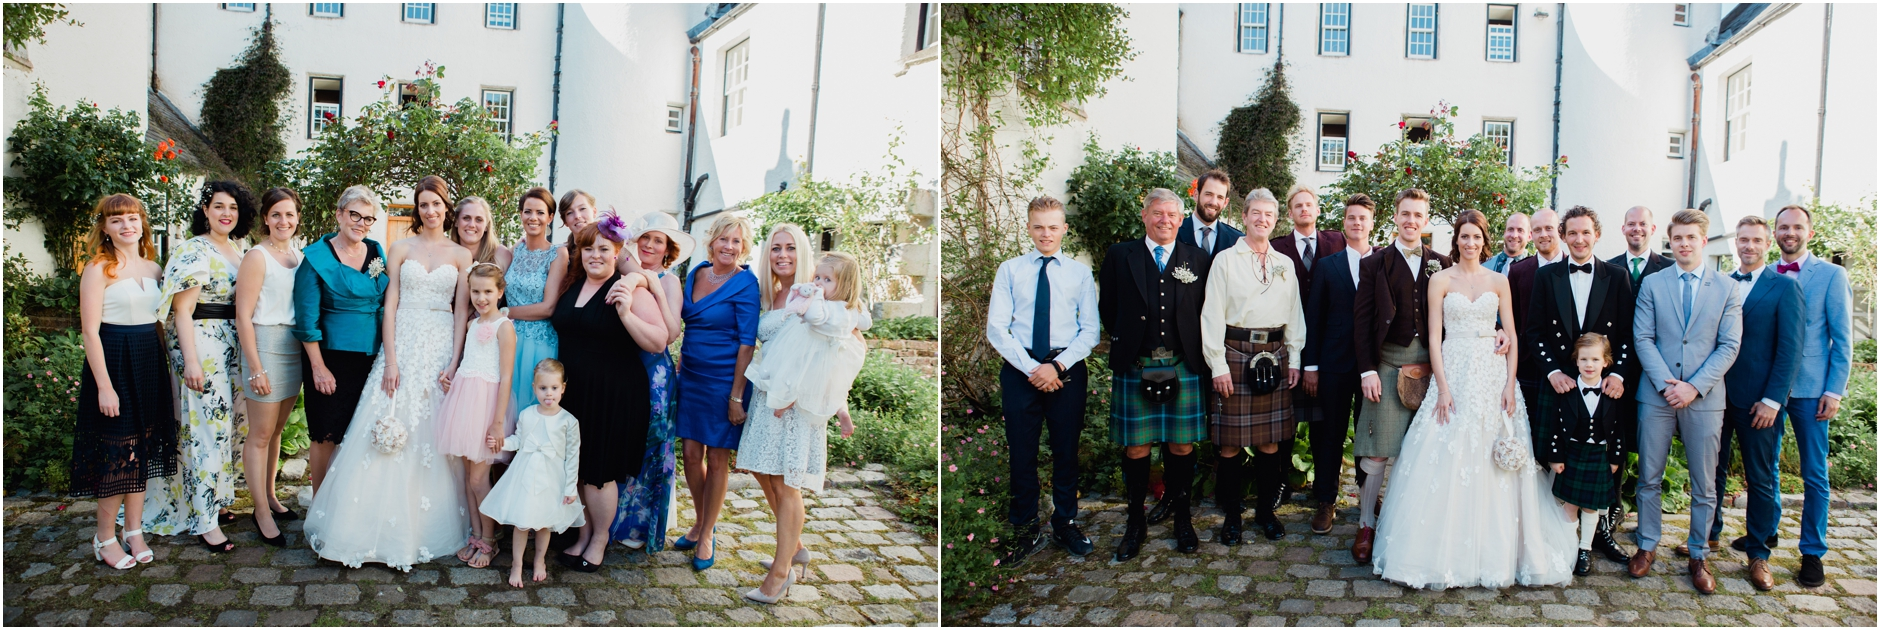 ntry house wedding photographer aberdeen highlands